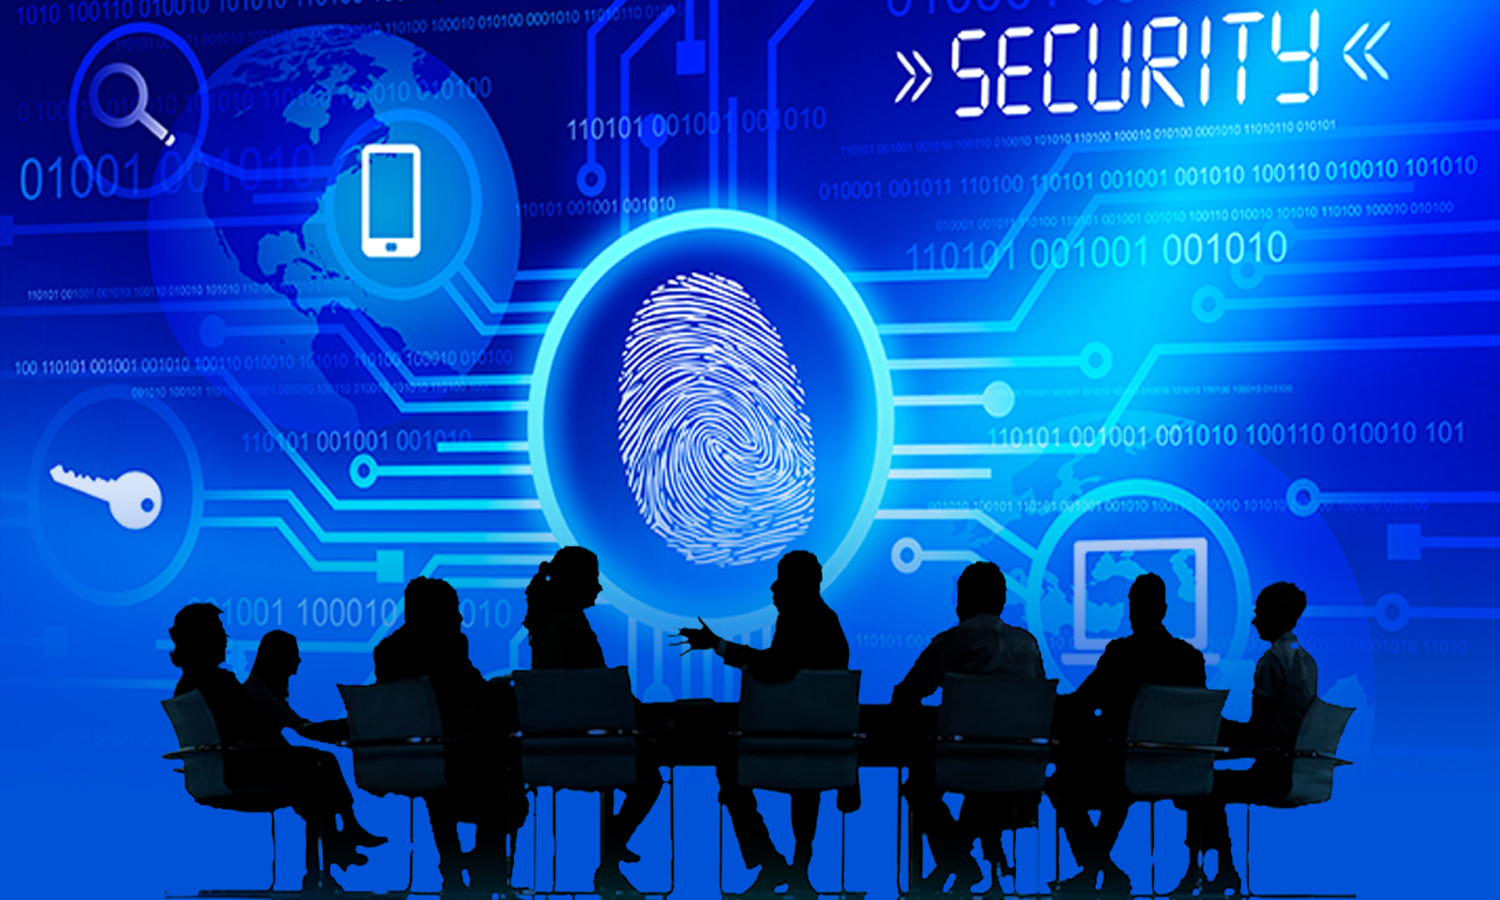 Top 4 Reasons Why Cybersecurity is Pivotal in These Days In All Sectors